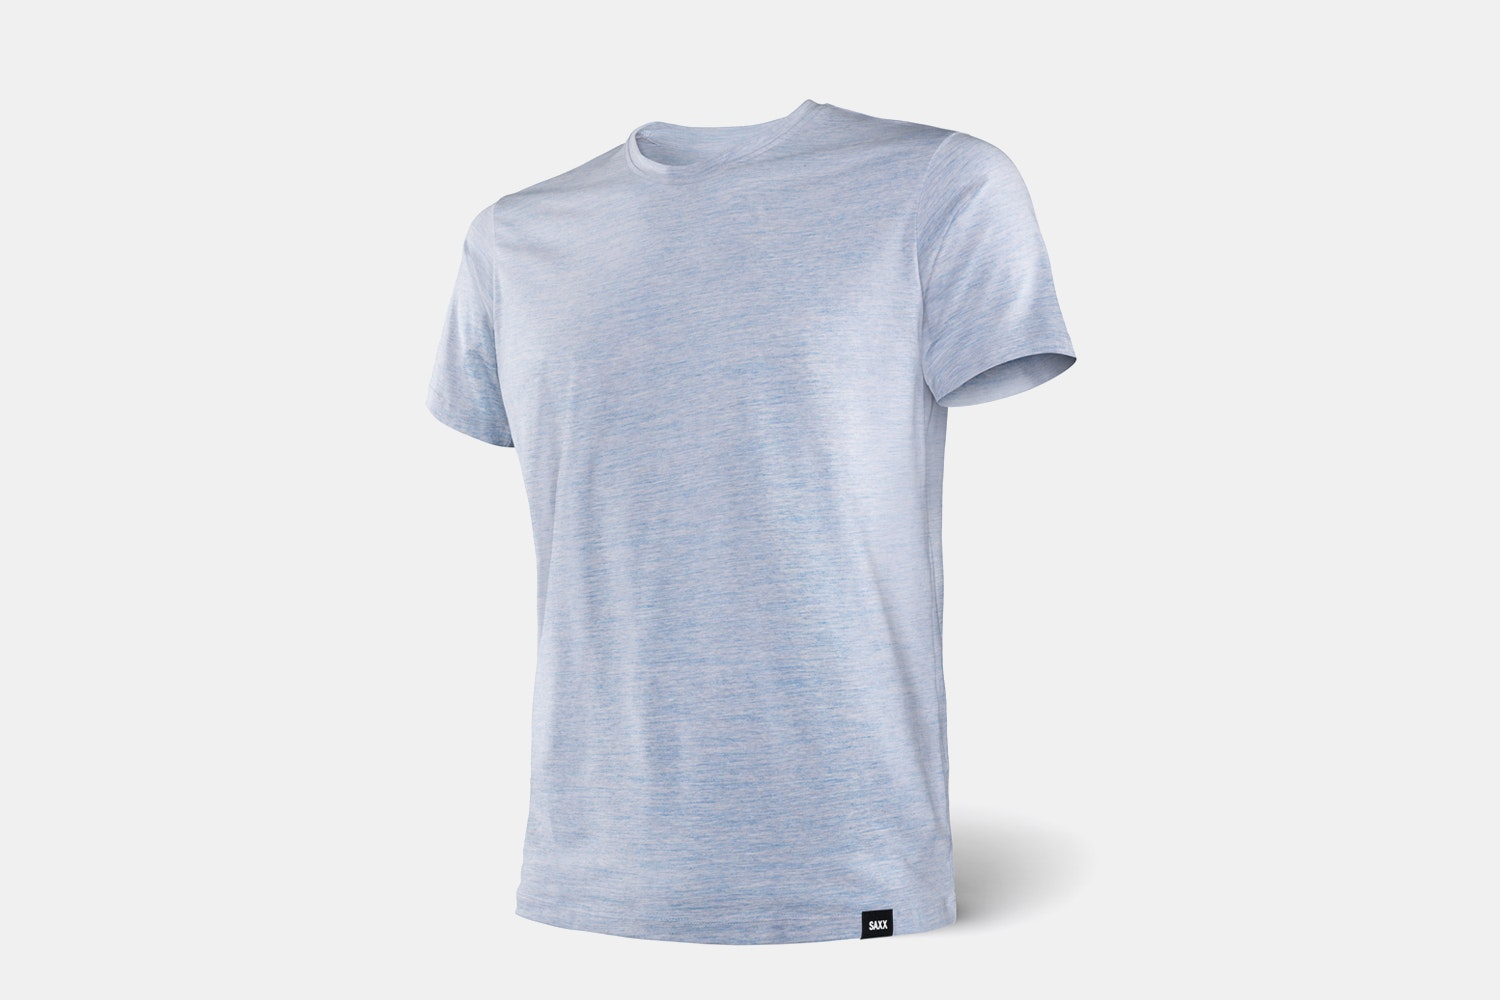 SAXX Ultra Tri-Blend Short-Sleeve Crew Tee